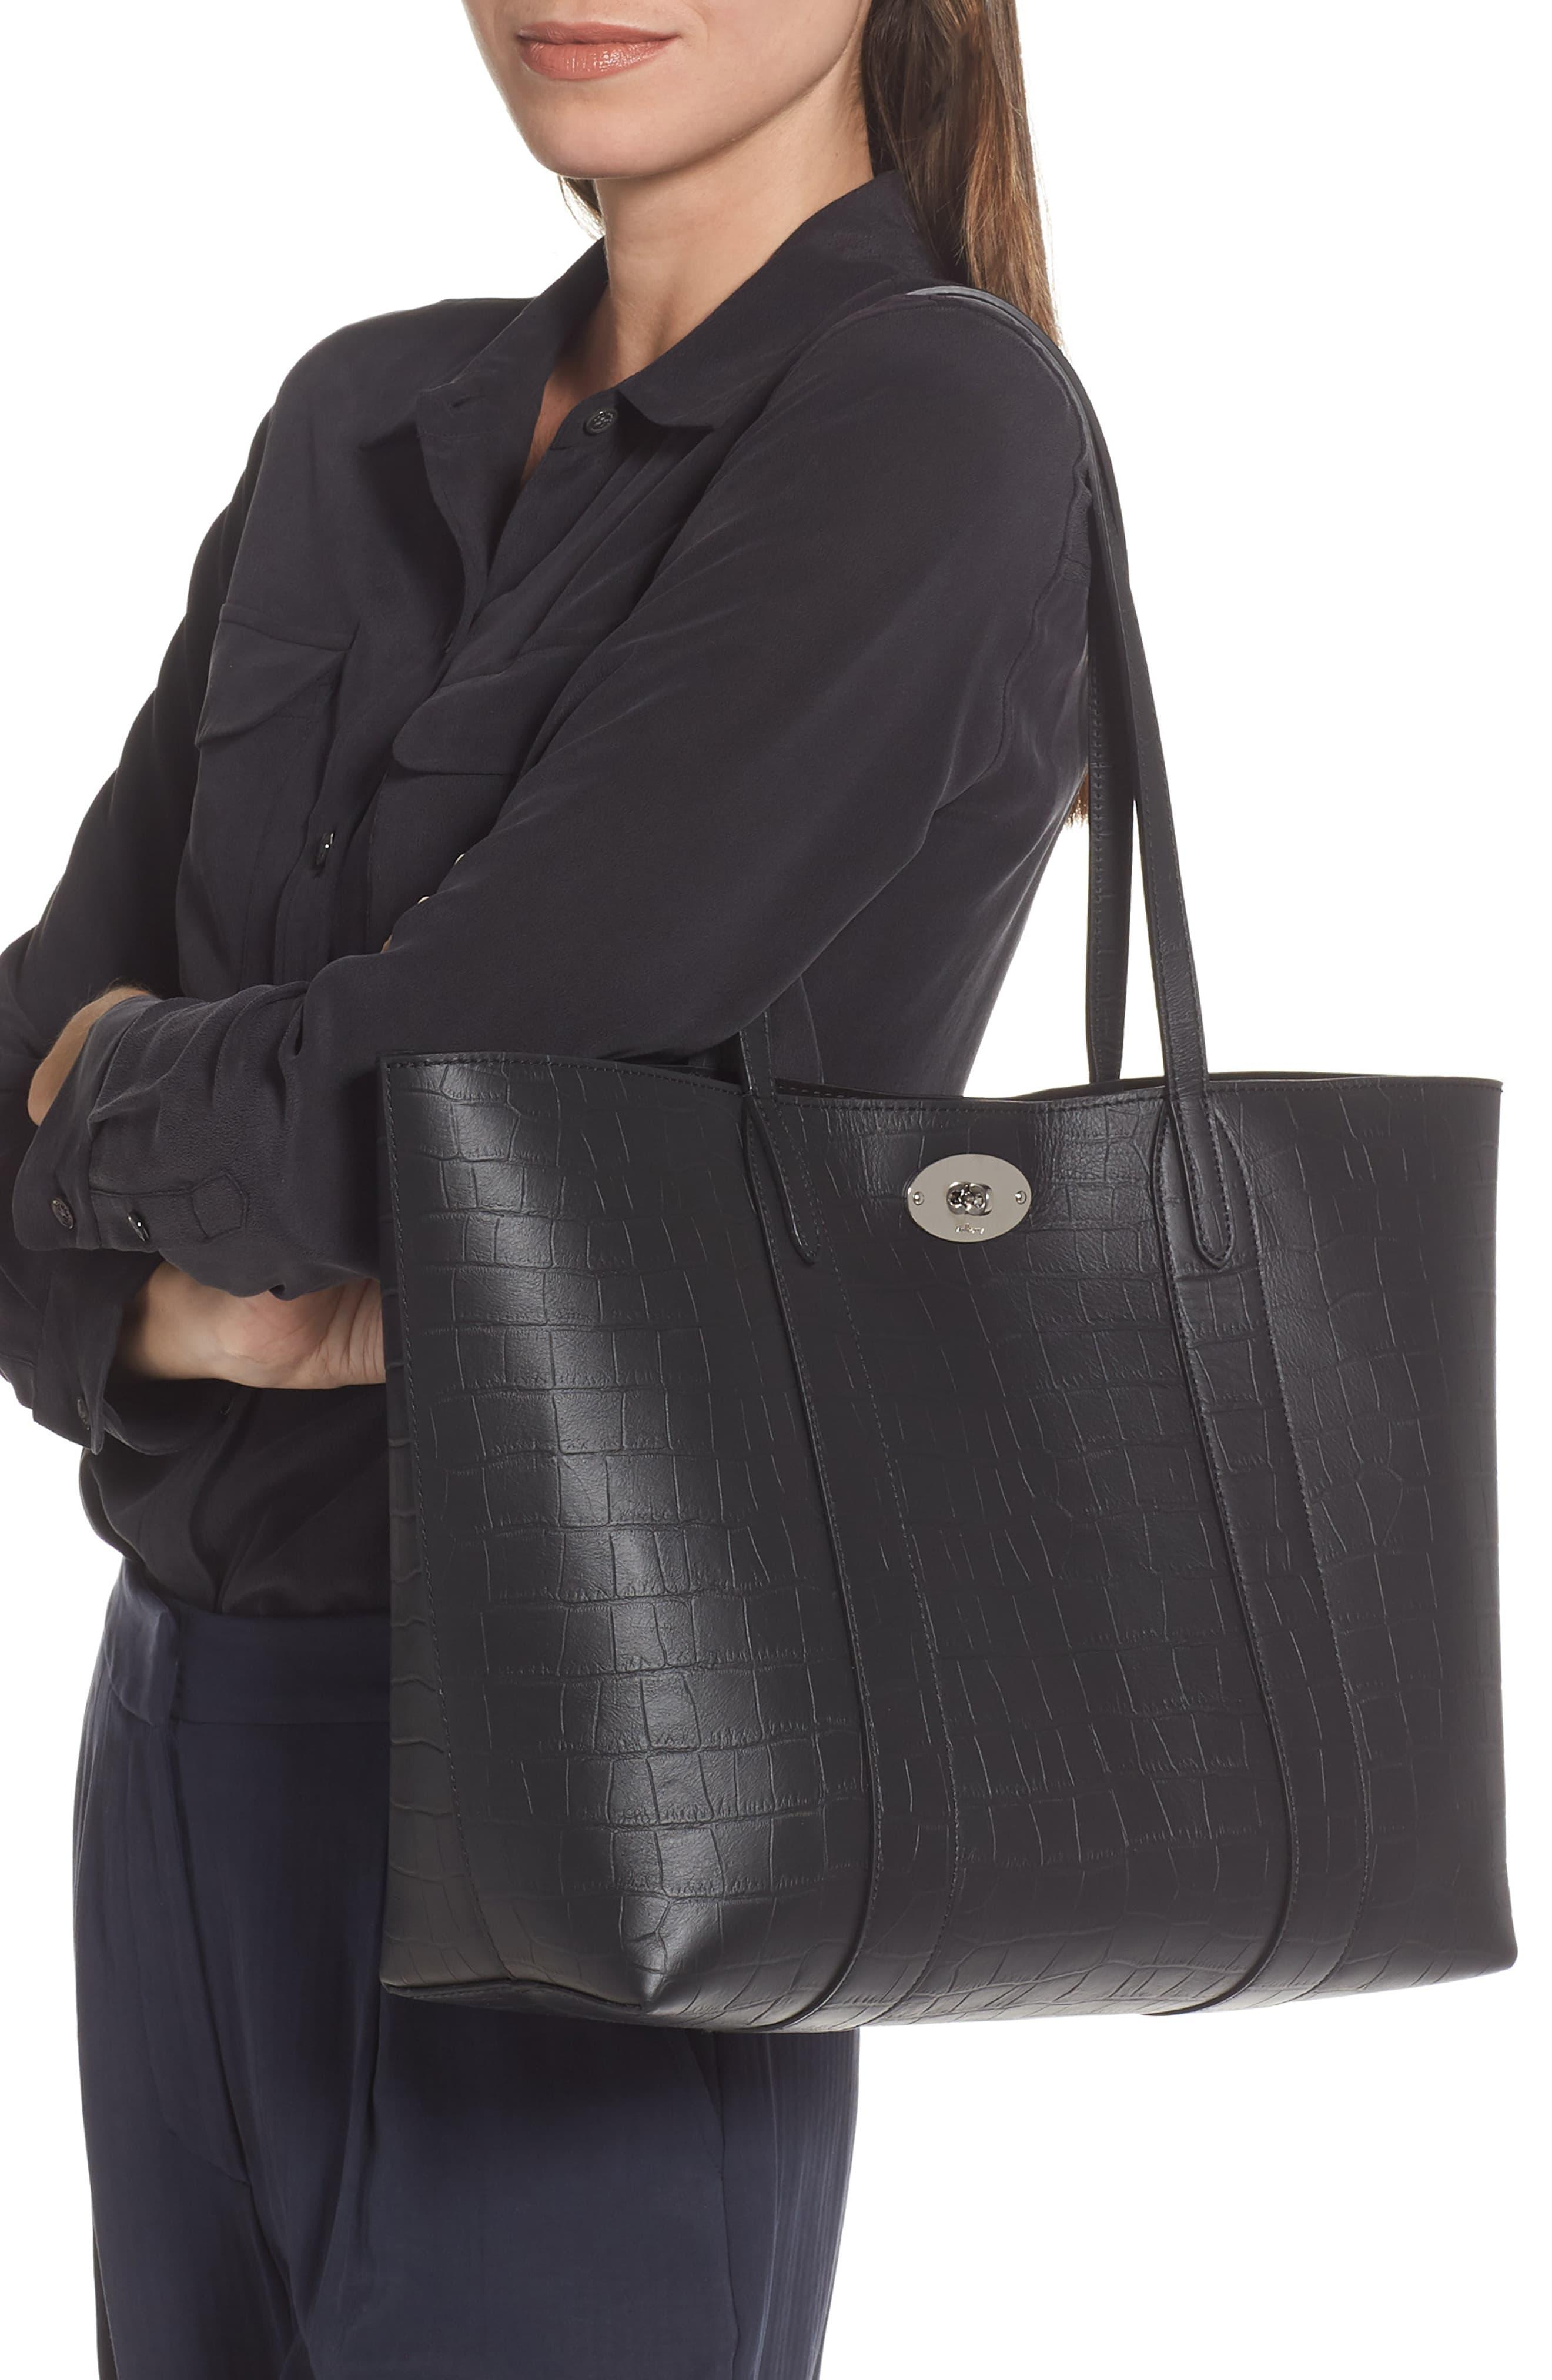 Mulberry Bayswater Matte Croc Embossed Leather Tote & Pouch in Black - Lyst